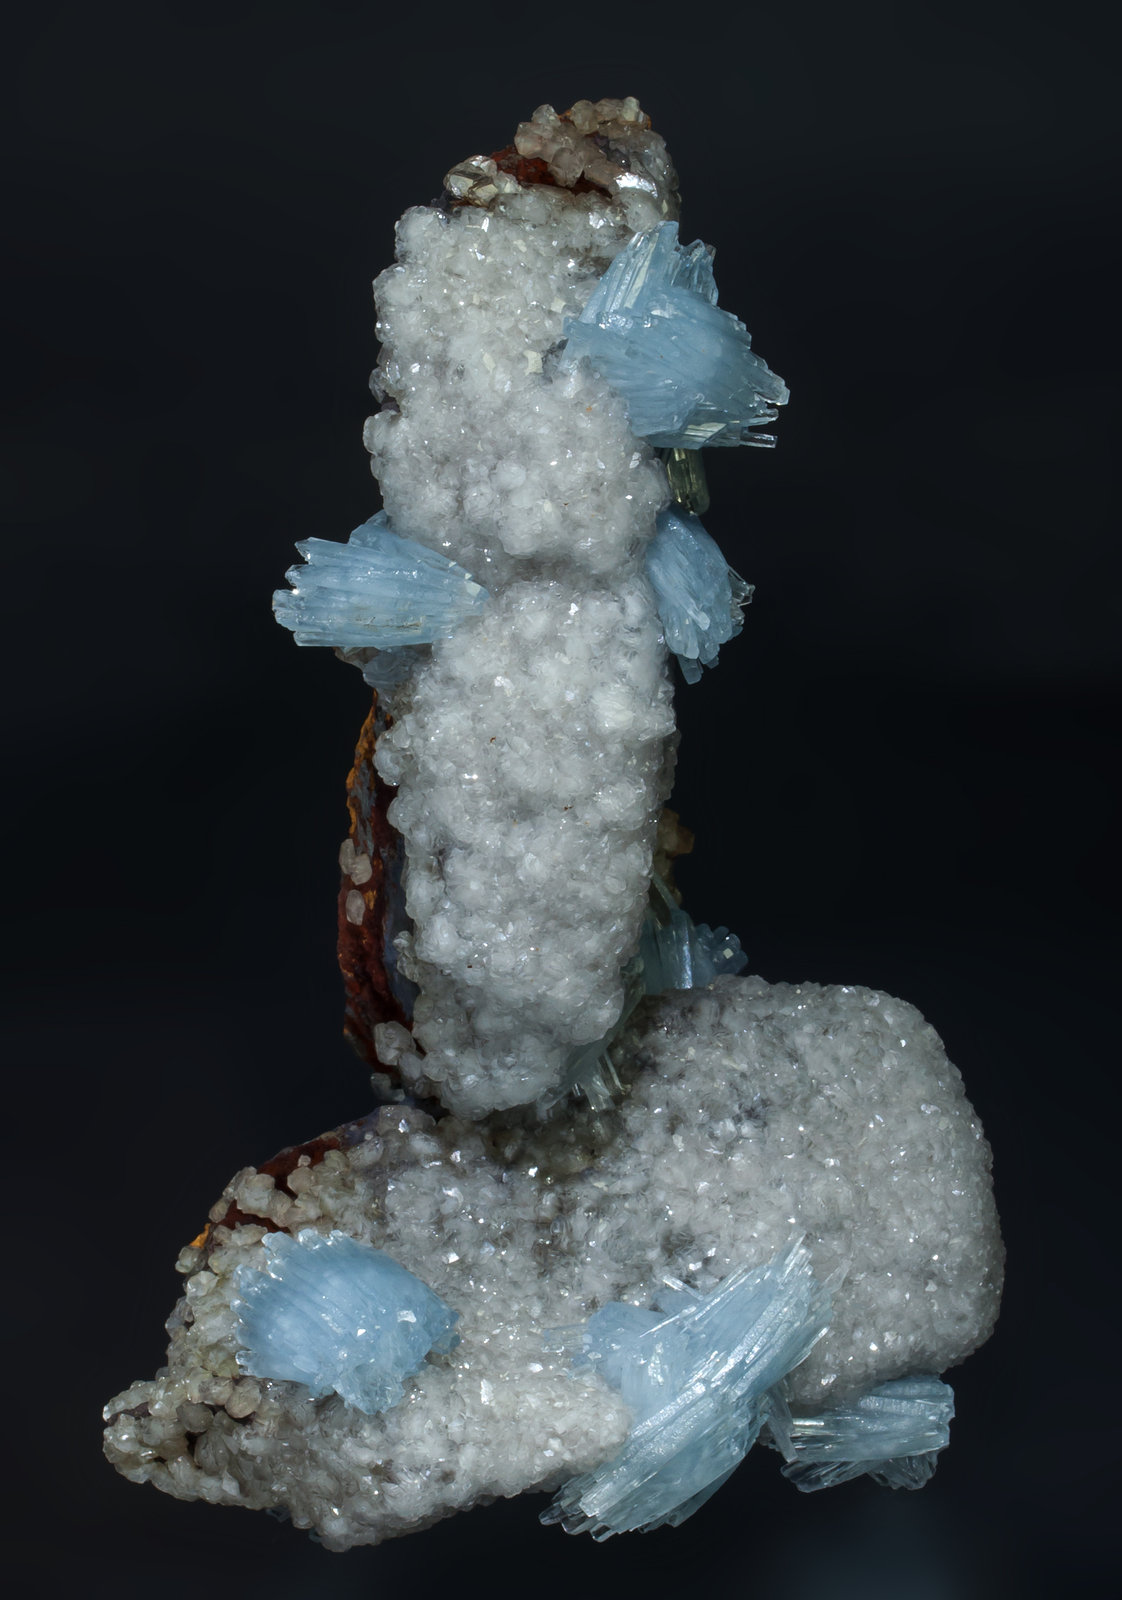 specimens/s_imagesAB0/Barite-MR86AB0f.jpg